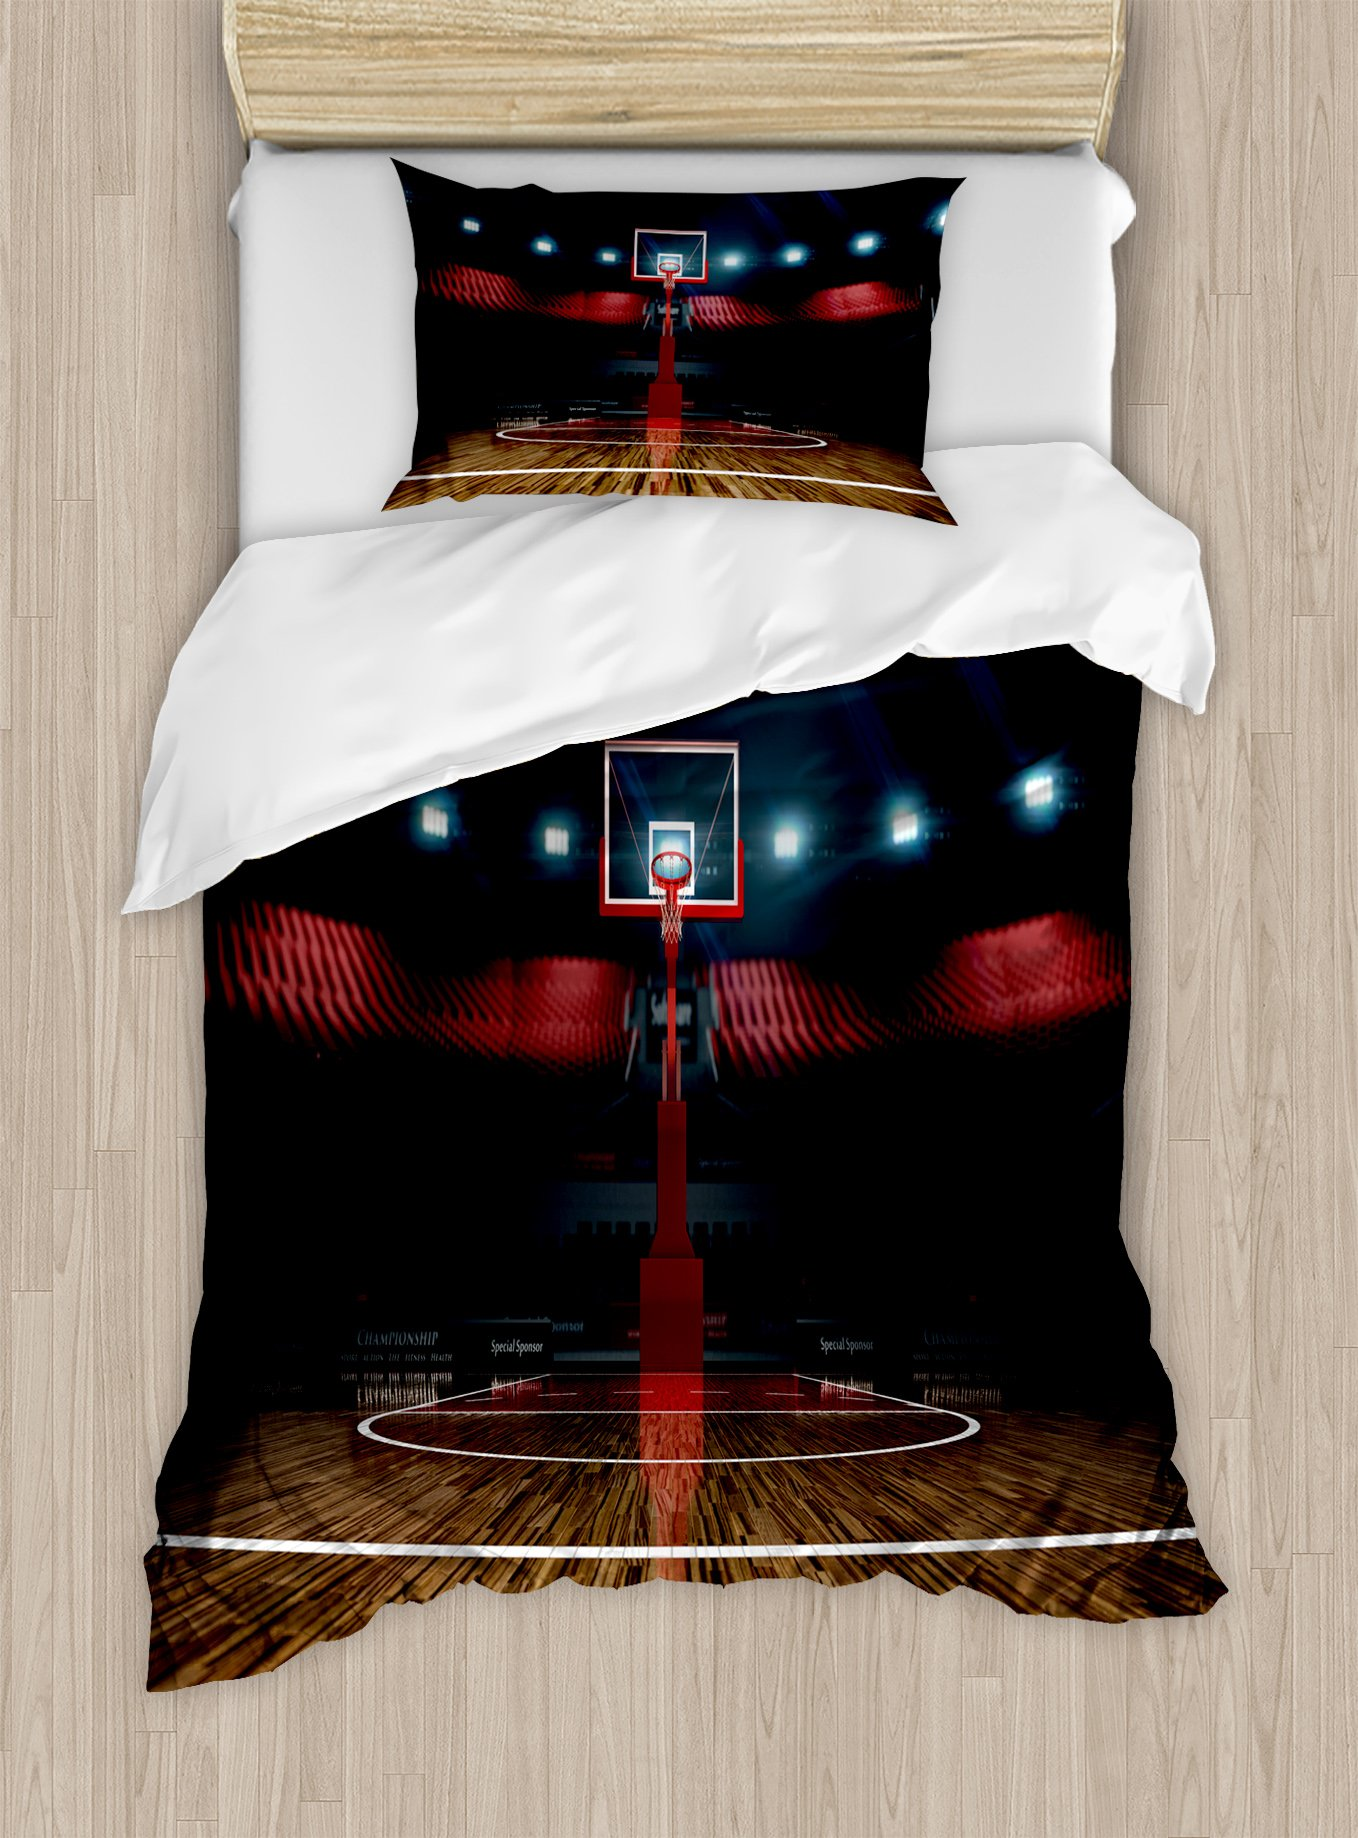 Ambesonne Teen Room Duvet Cover Set Twin Size, Professional Basketball Arena Stadium Before The Game Championship Sports Image, Decorative 2 Piece Bedding Set with 1 Pillow Sham, Multicolor